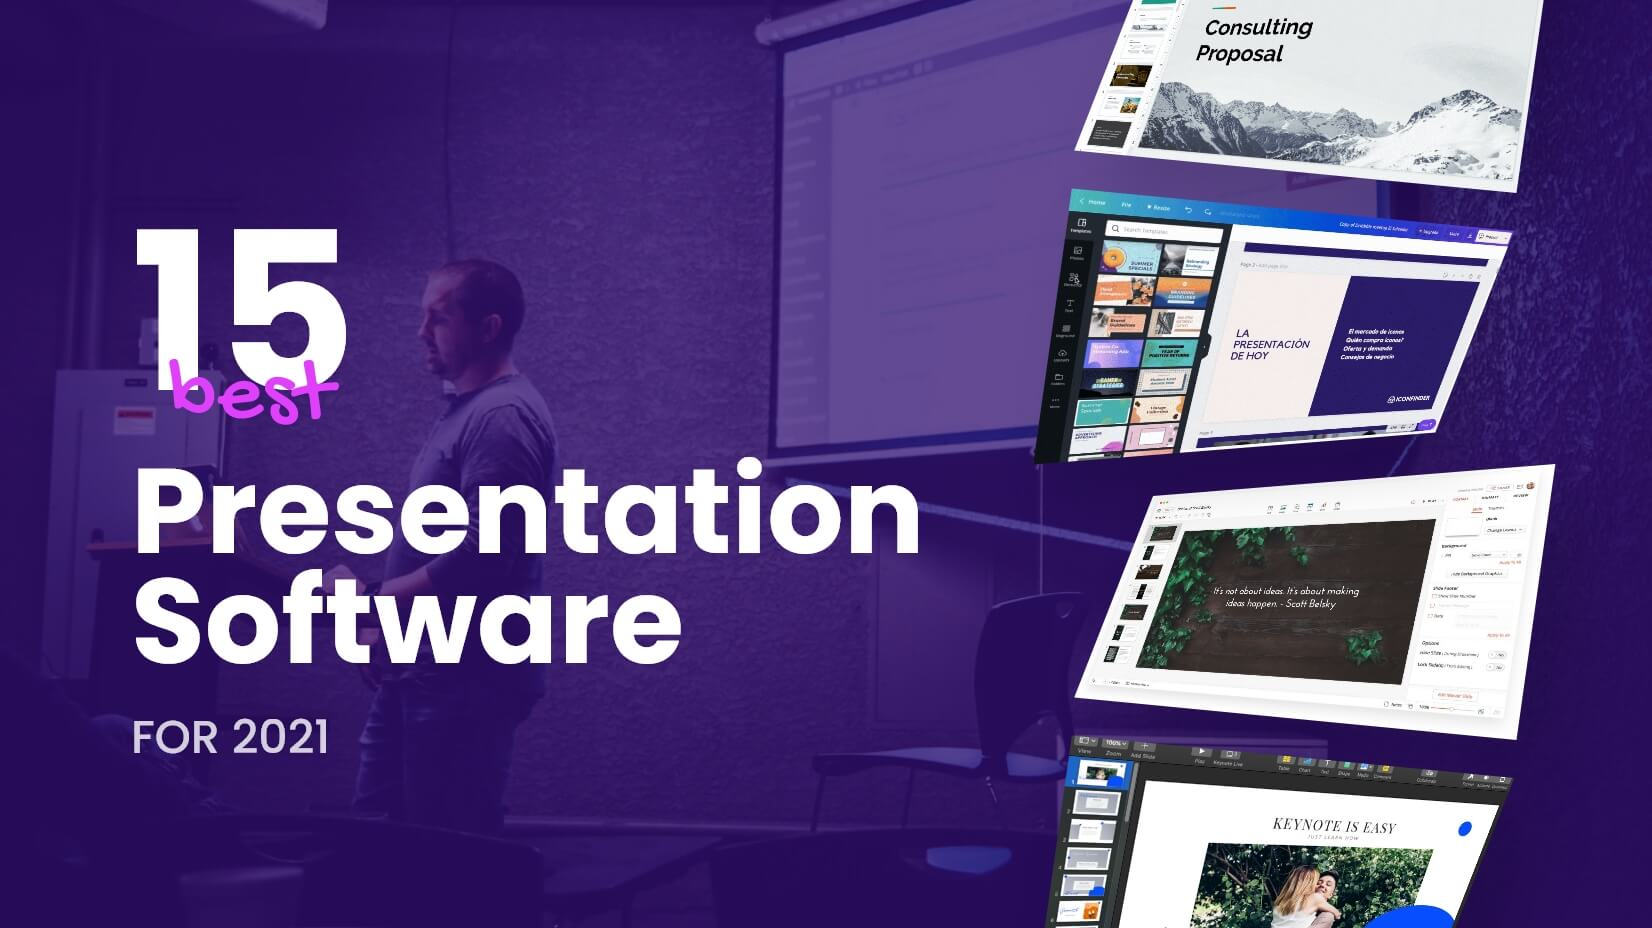 The Best Presentation Software for 2021